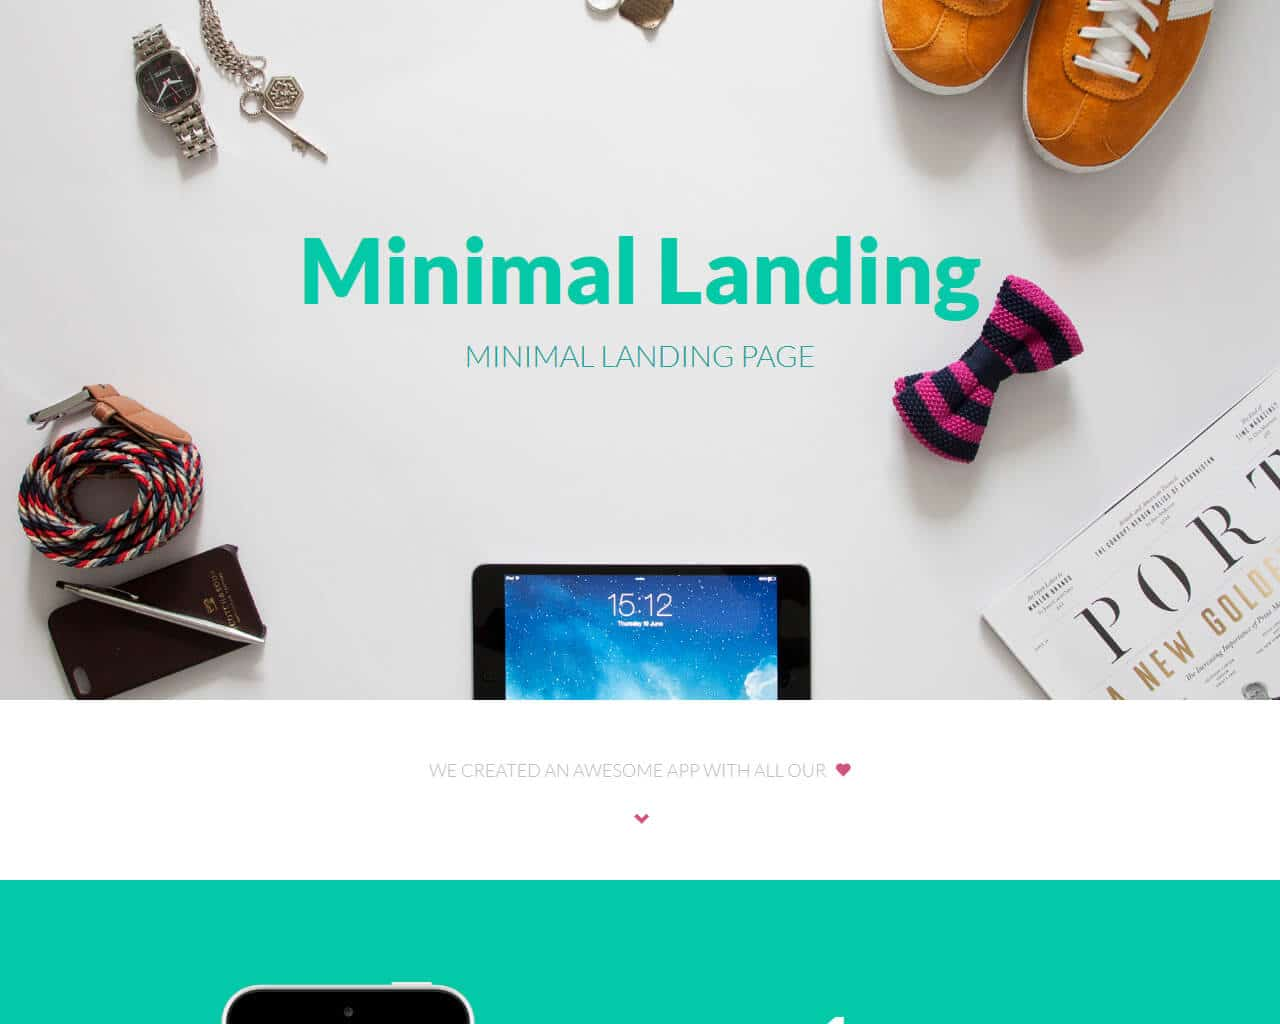 MinimalLanding Website Template